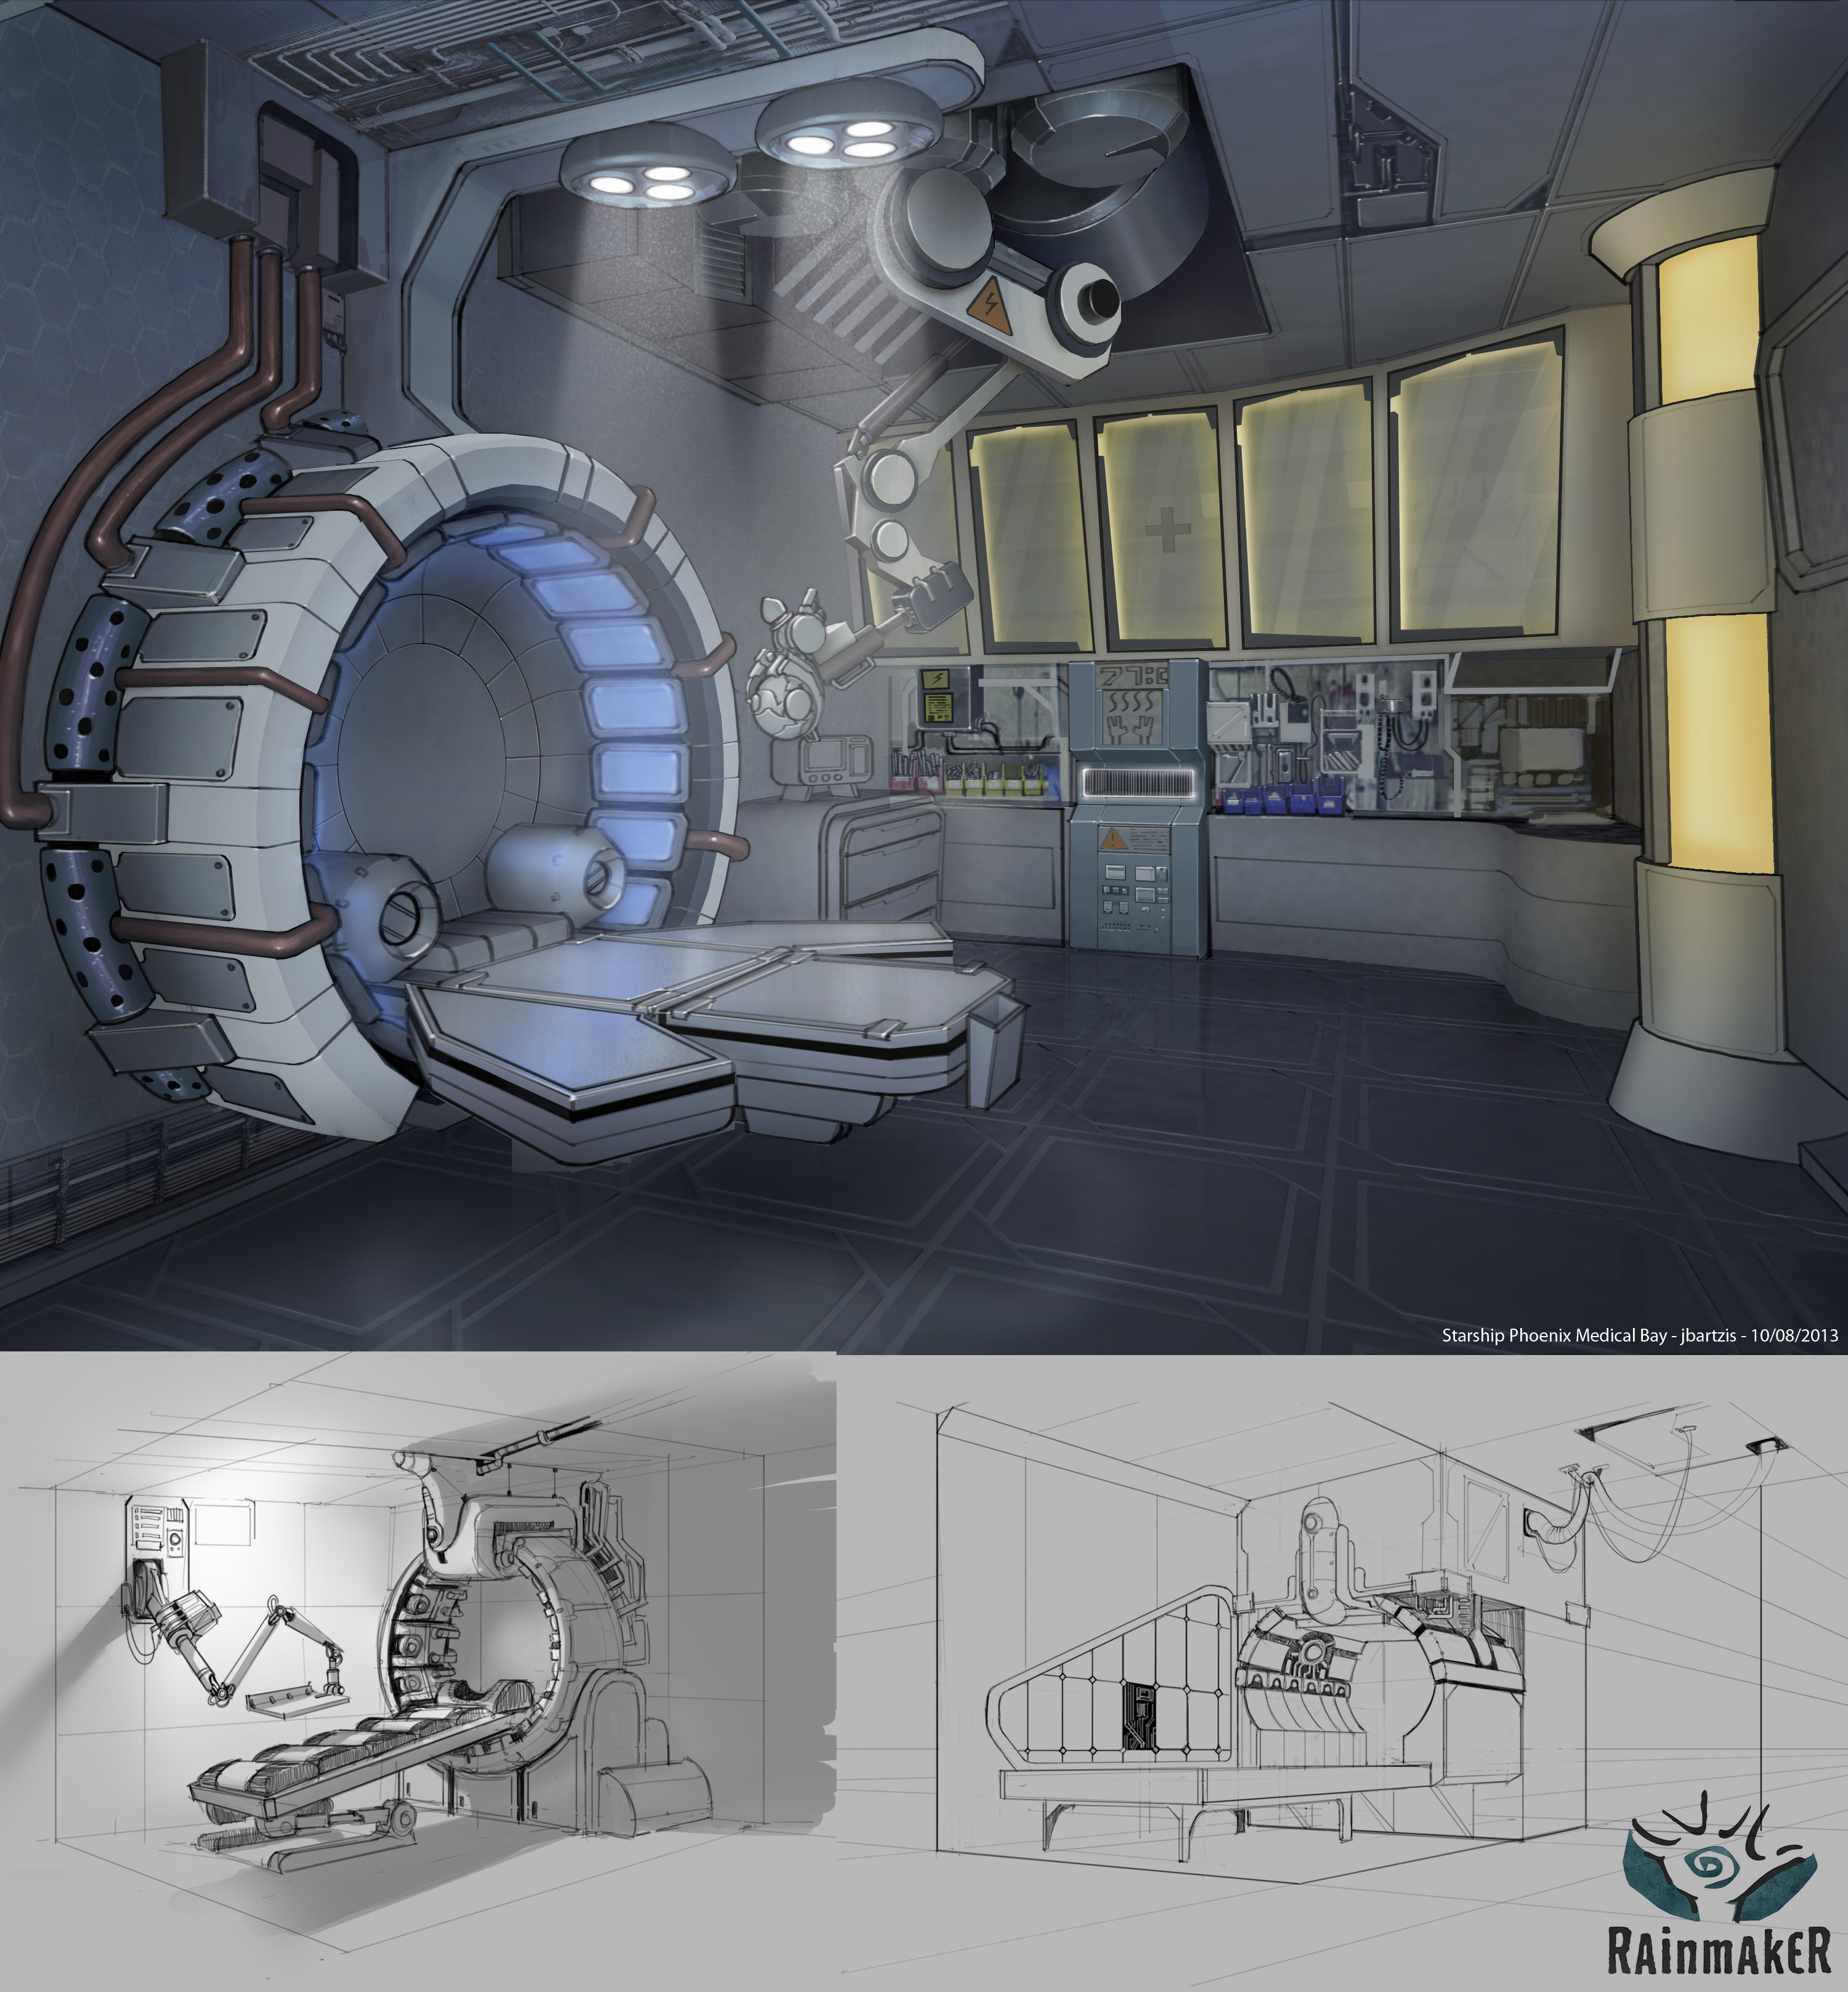 MedLab set design and early concept drawings.